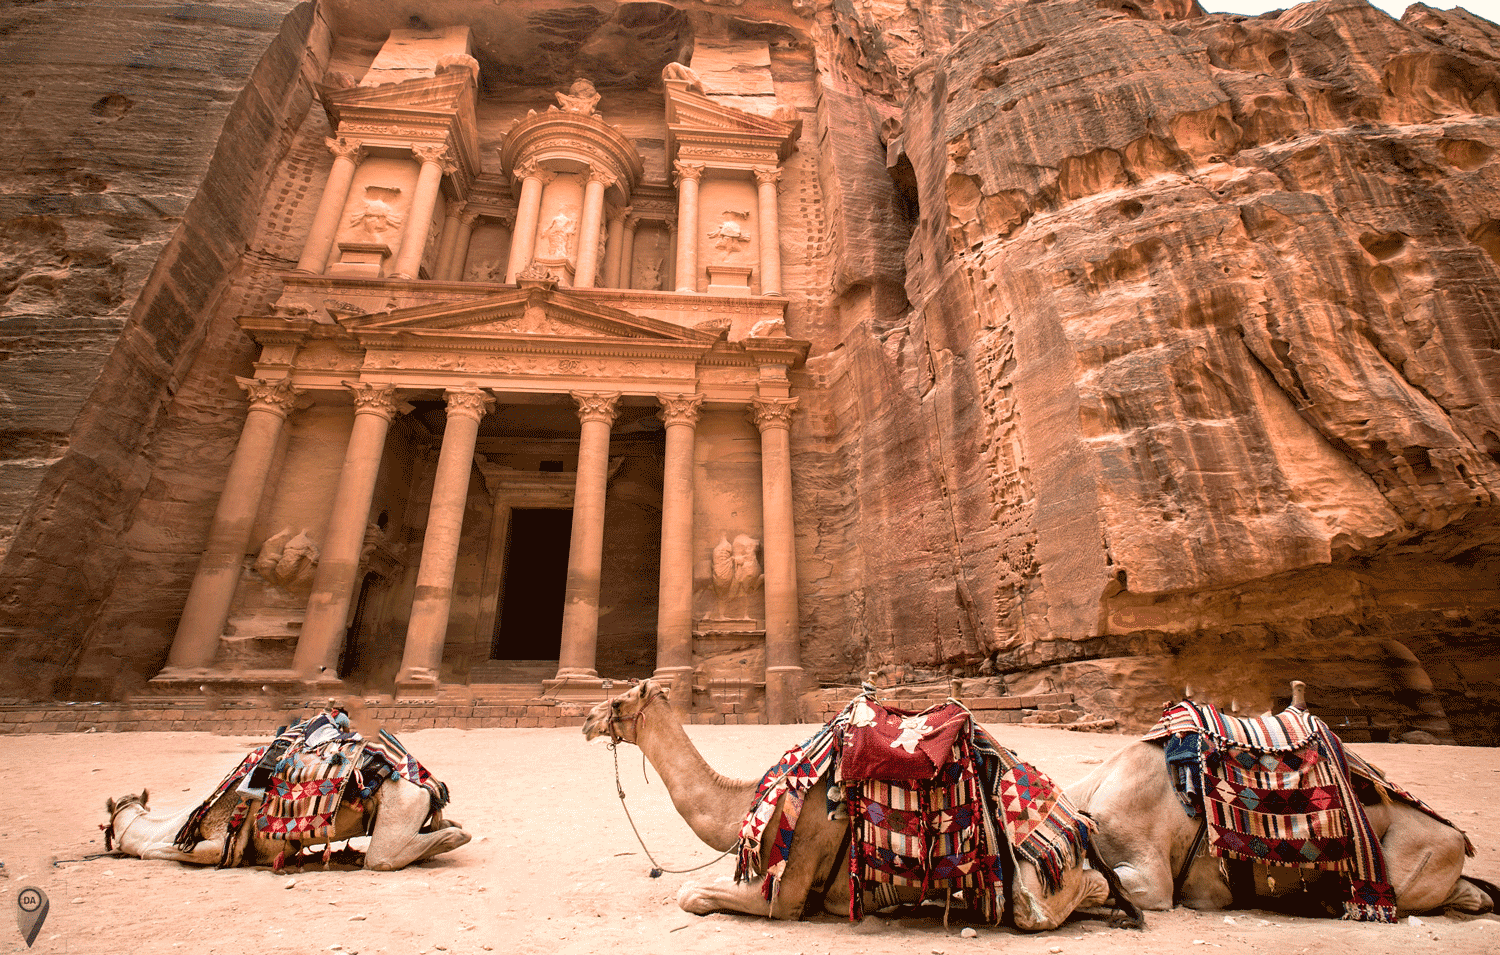 Let's travel the world!: The Ancient City of Petra in Jordan.